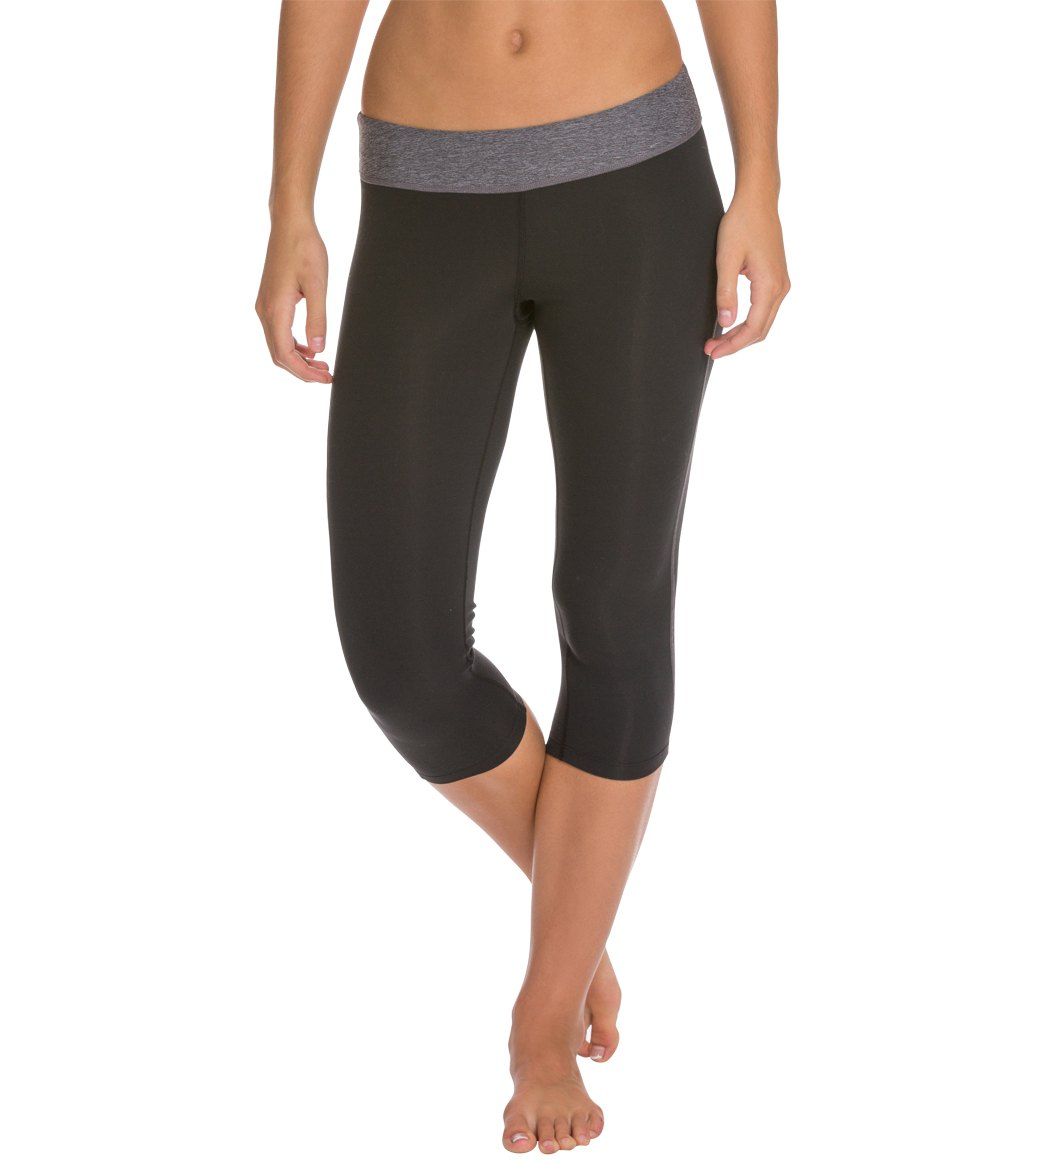 Speedo Women's Capri Pant at SwimOutlet.com